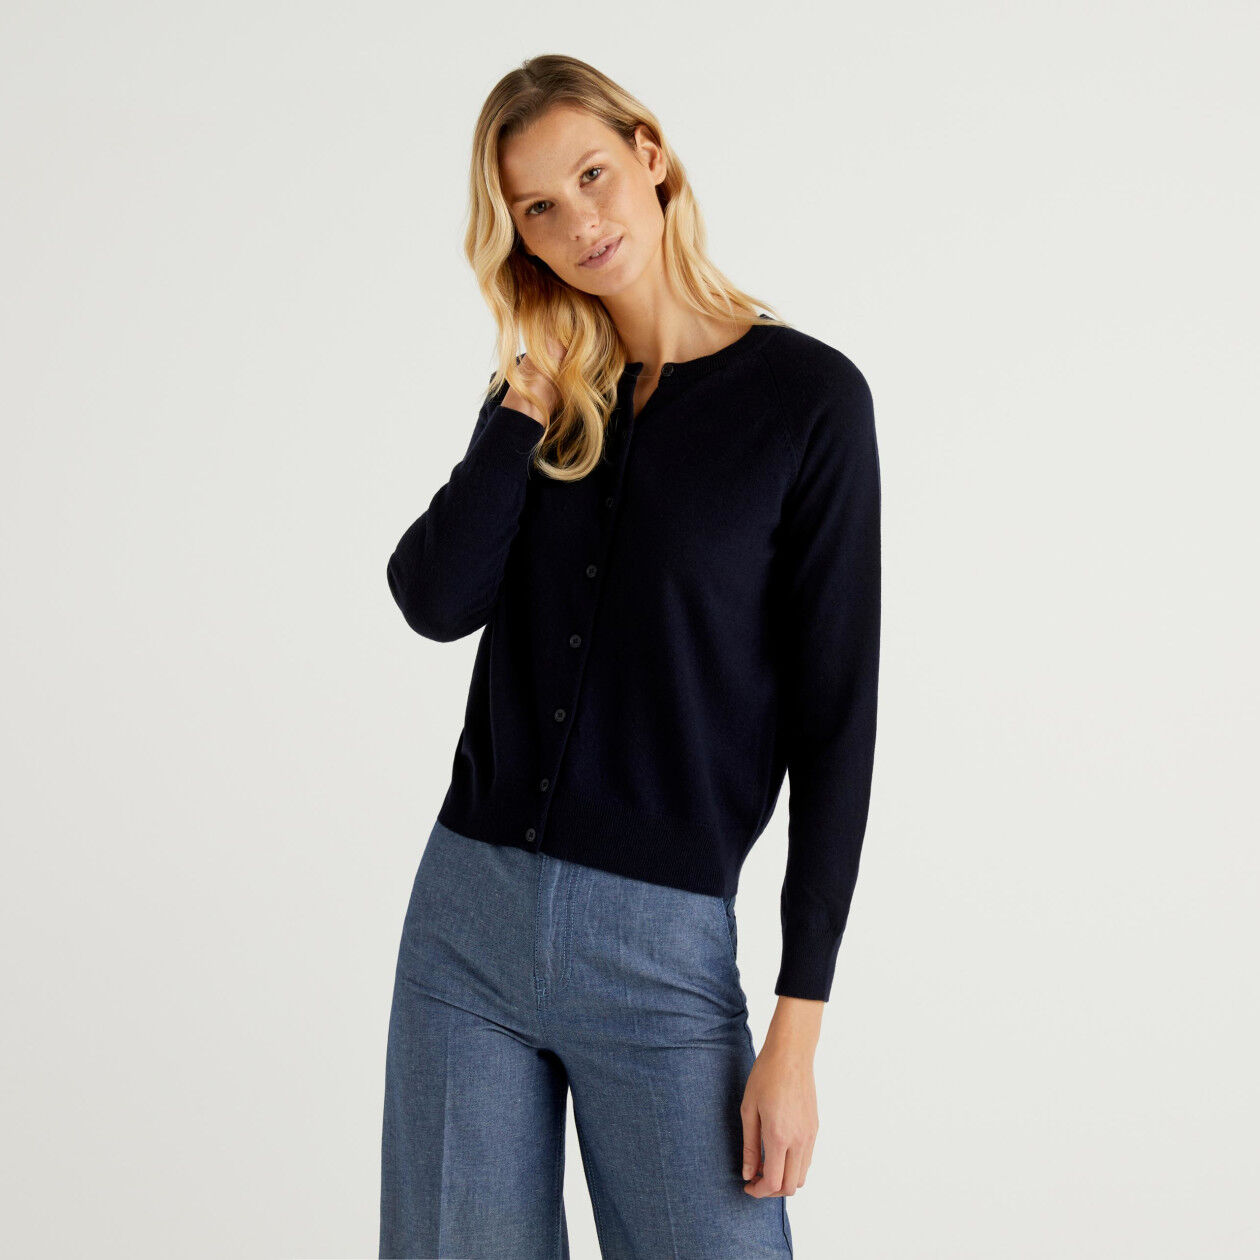 Dark blue crew neck cardigan in cashmere and wool blend